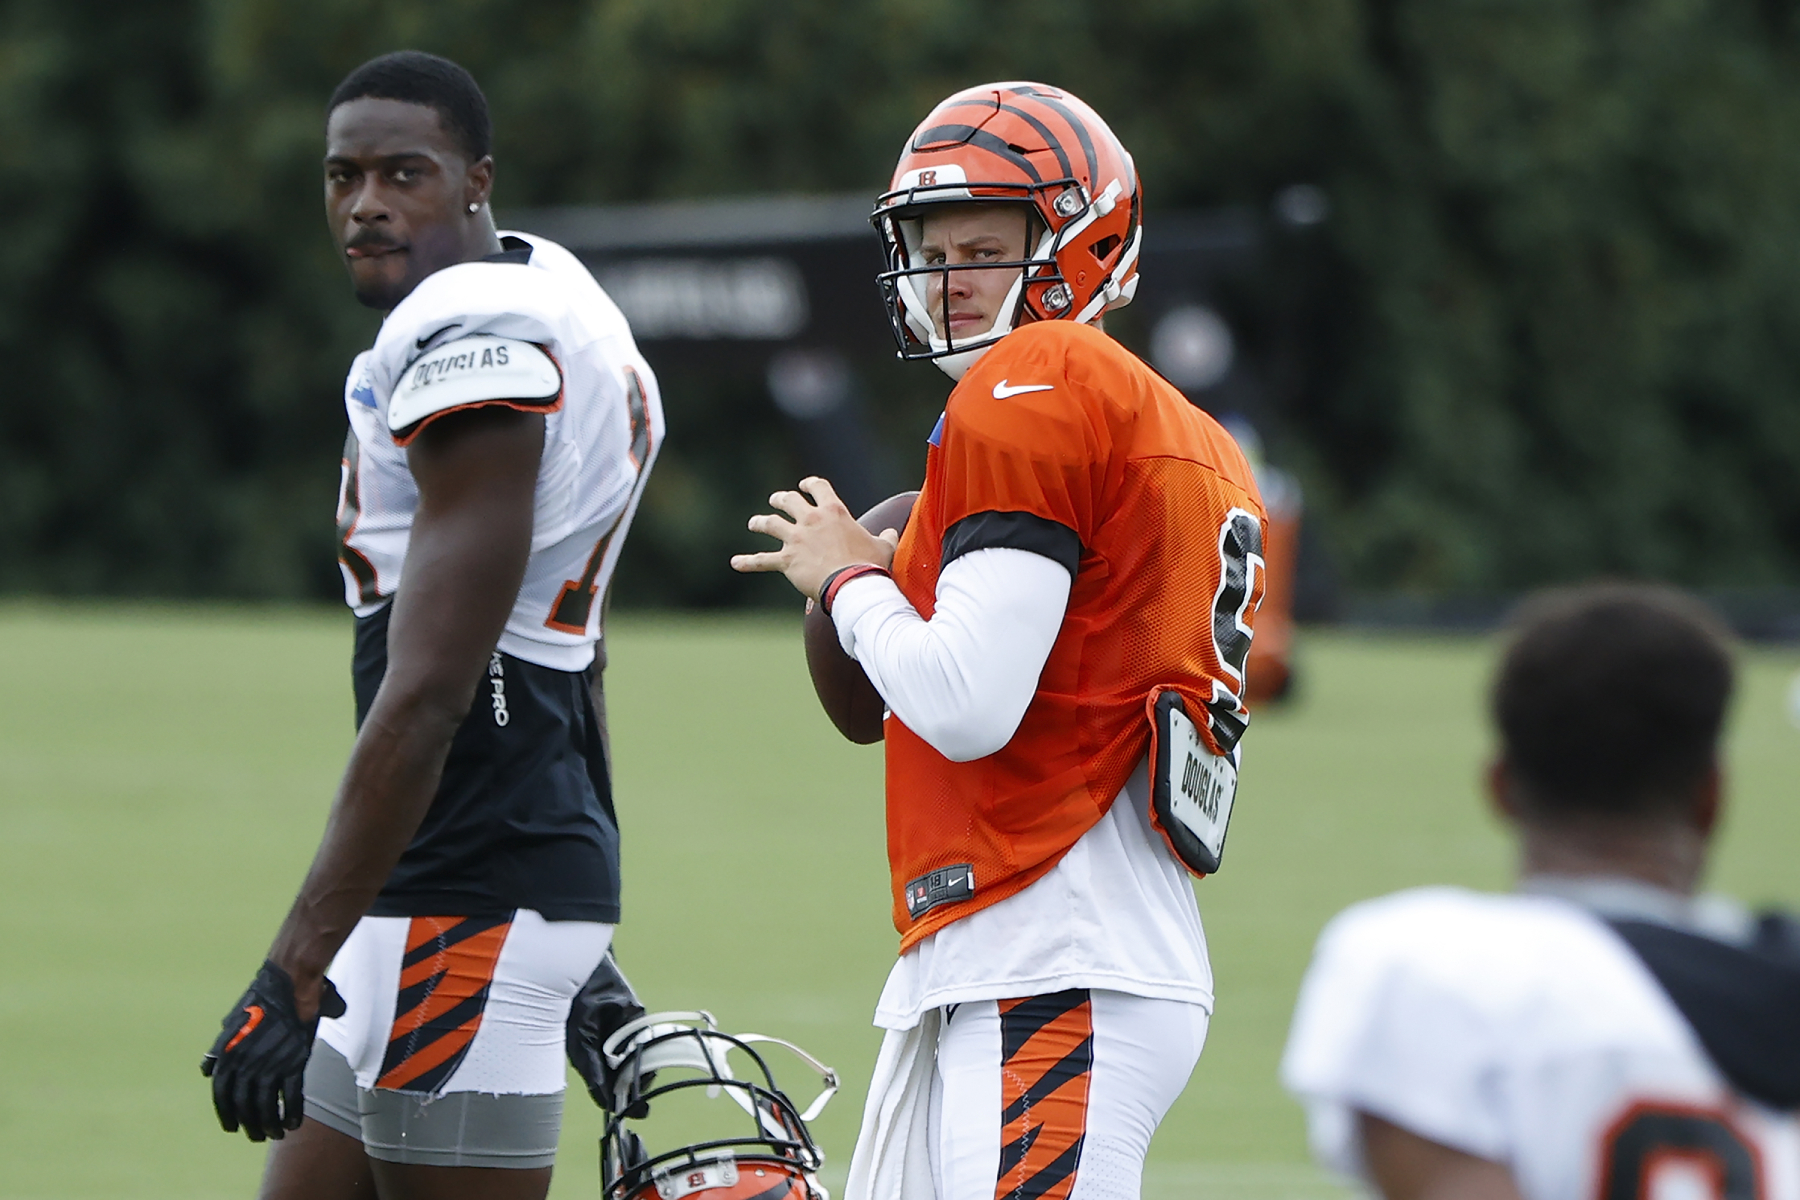 While many teams and athletes are protesting racism in America, Joe Burrow and the Bengals just delivered a powerful message.